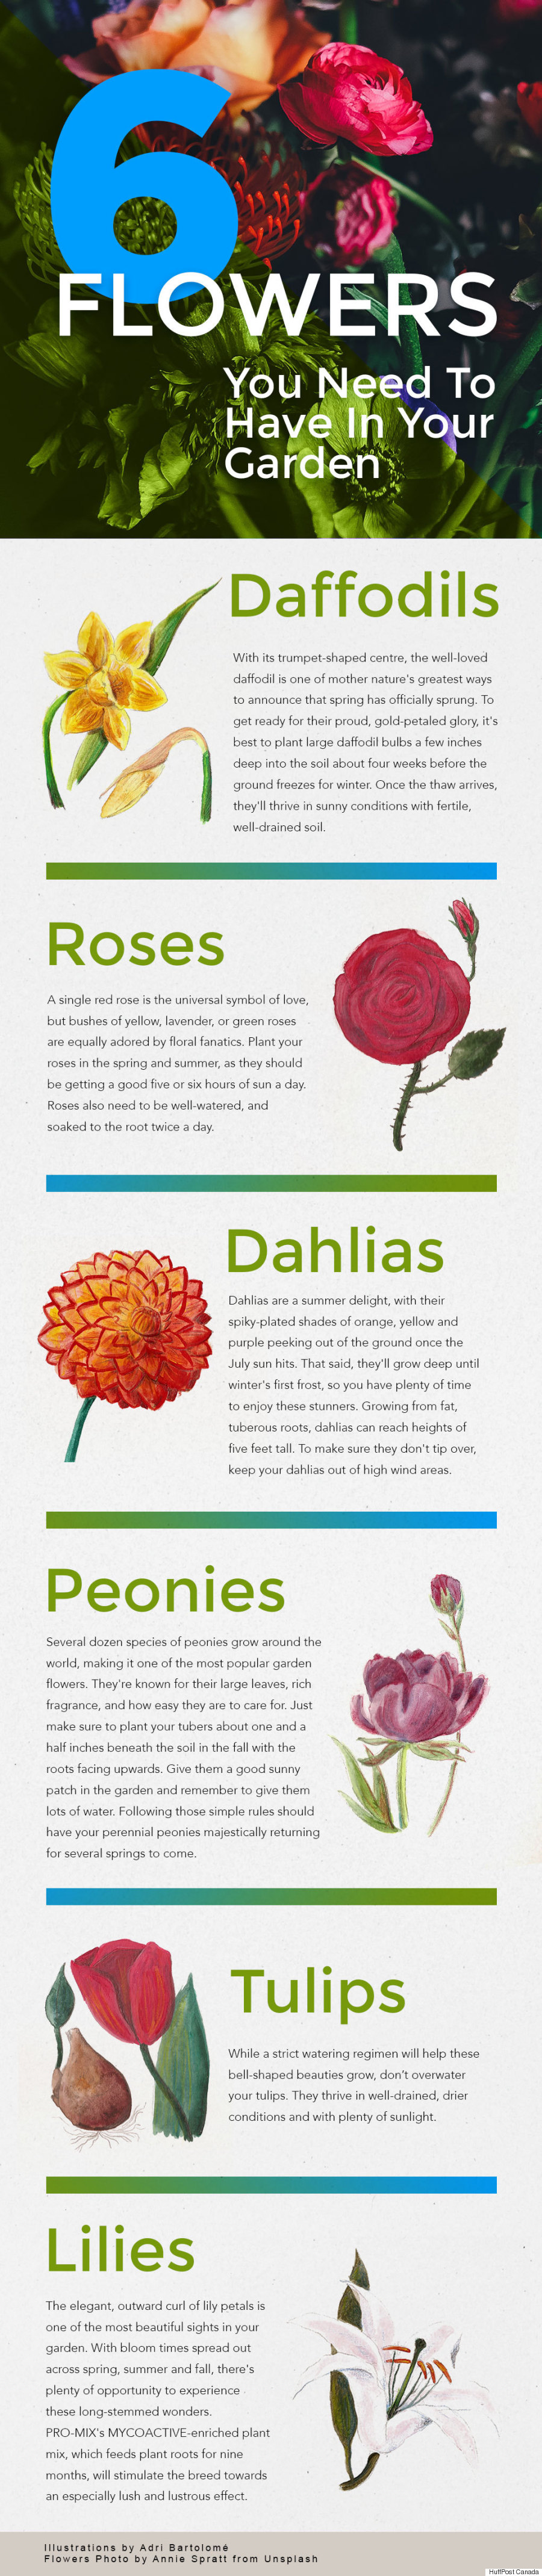 flowers infographic